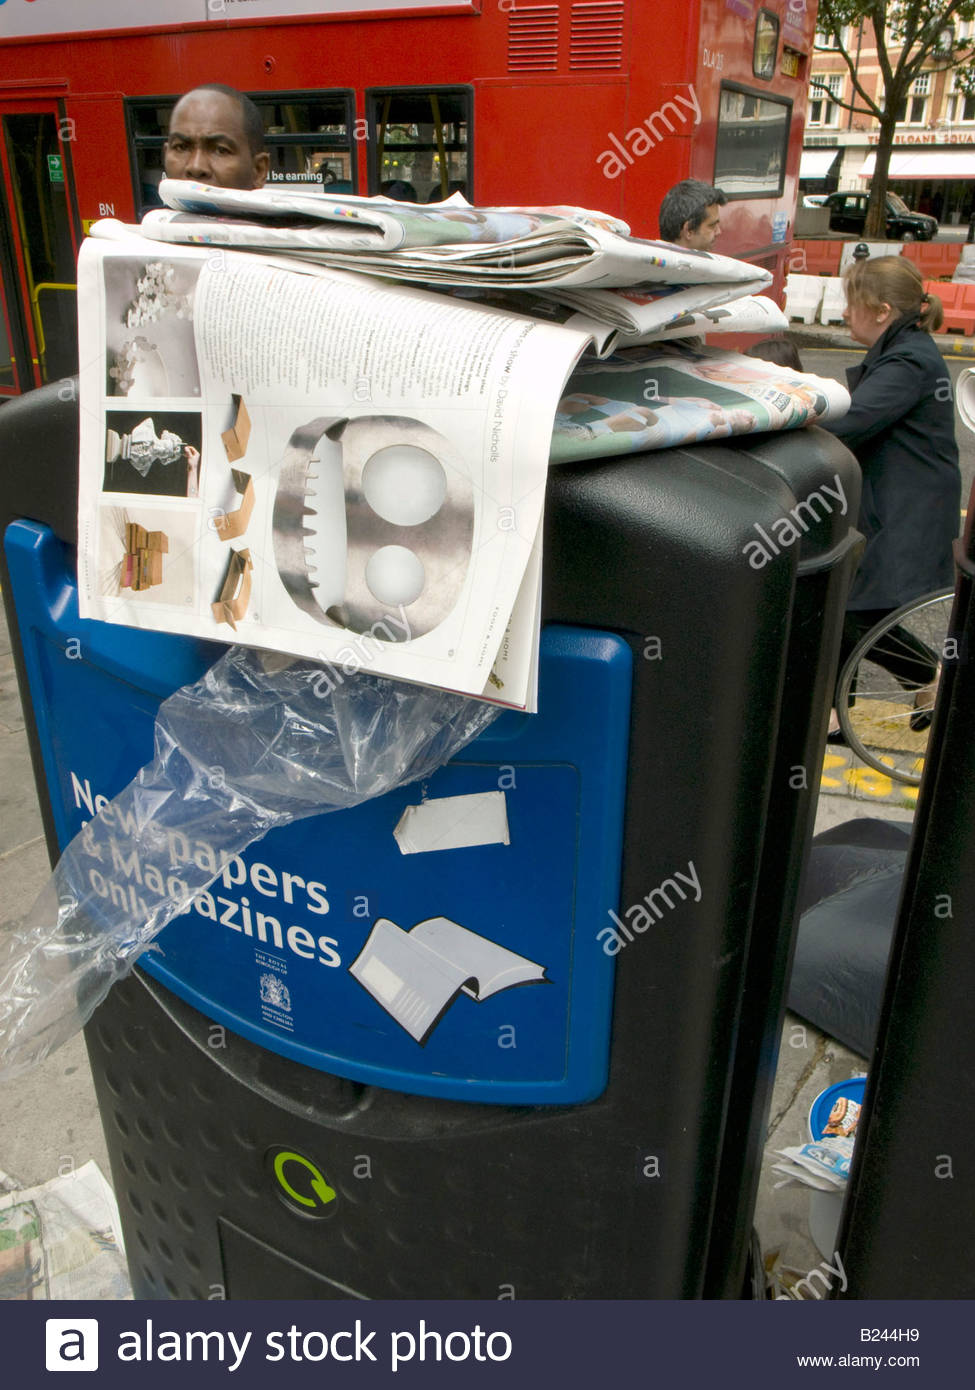 Newspapers to be recycled in Recycling Bins in Sloane Square London with London Buses passing - Stock Image